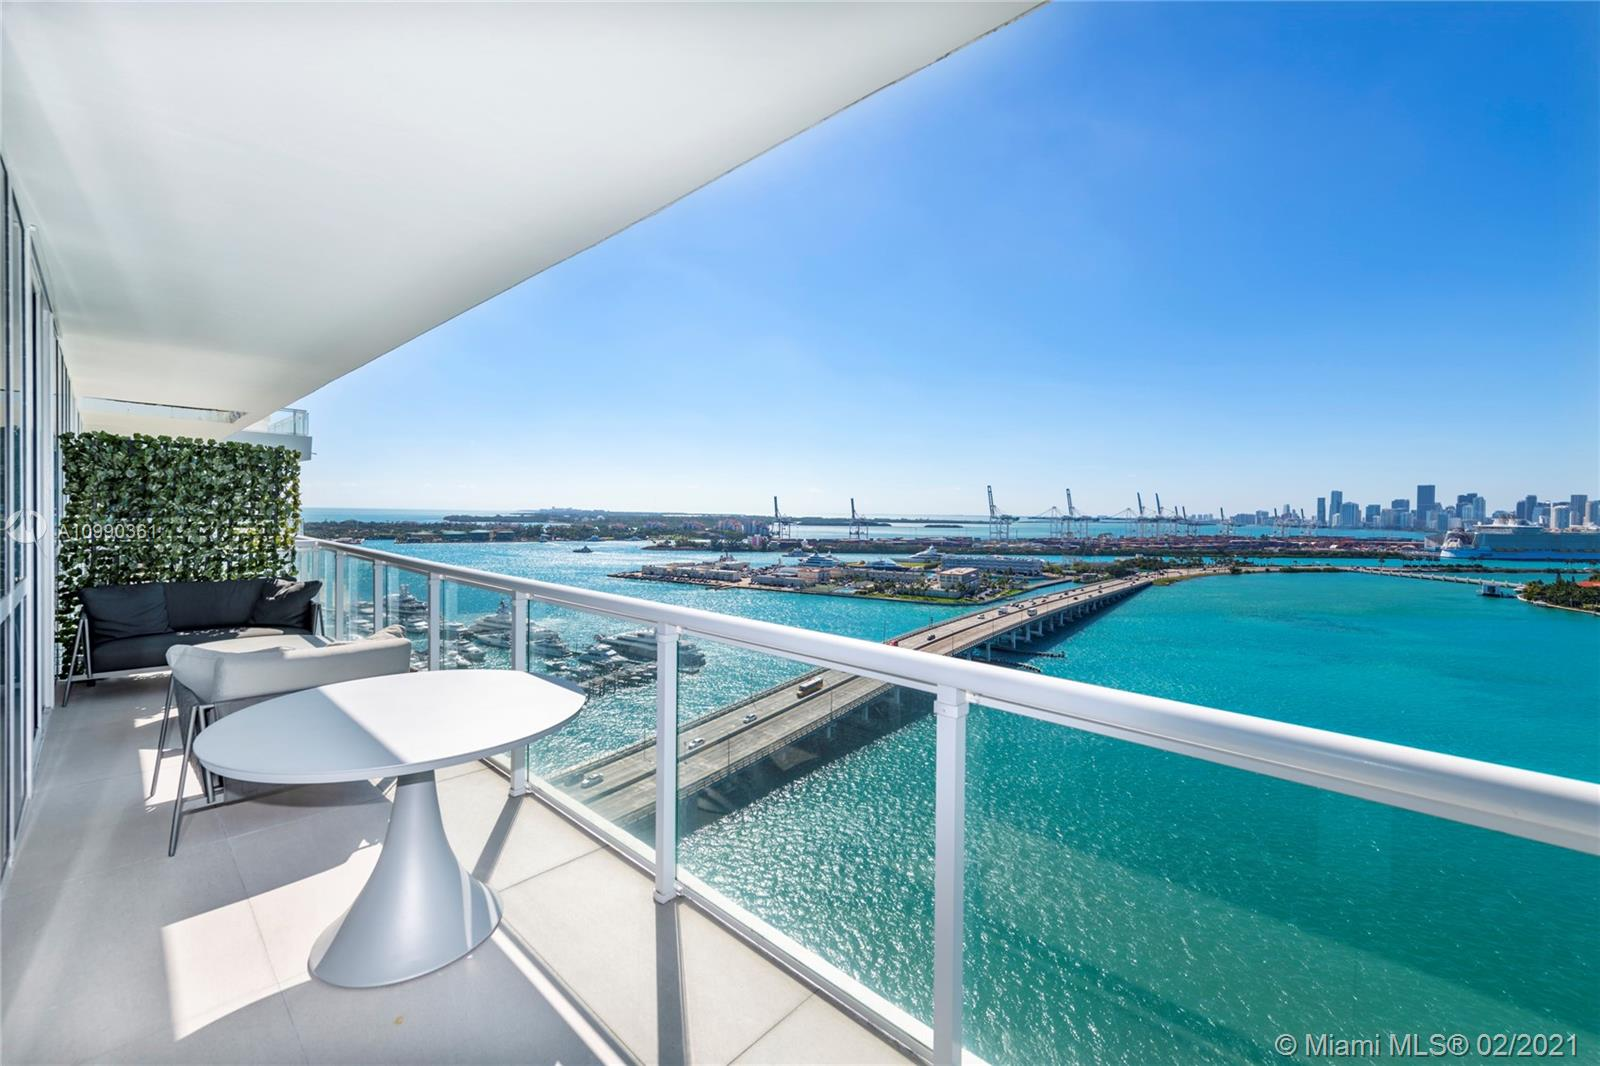 Artecacto Peace of Art, a dimond on the water ,this 2 bedroom and 2 bathroom fully renovated By Artefacto.This open floor plan house in the sky located in the heart of south beach offers panoramic 120° wraparound views of the ocean, Miami skyline at the prestigious Bentley bay residences . This one-of-a-kind unit boasts floor-to-ceiling windows, 9 'ceilings, Gourmet chef's kitchen is complete with top-of-the-line Gaggenau & Sub-Zero appliances.Incredible Wrap around Corner balconies t Direct water views/no obstruction Marina downstairs/concierge . Your home and your boat in the same spot..Easy to show .